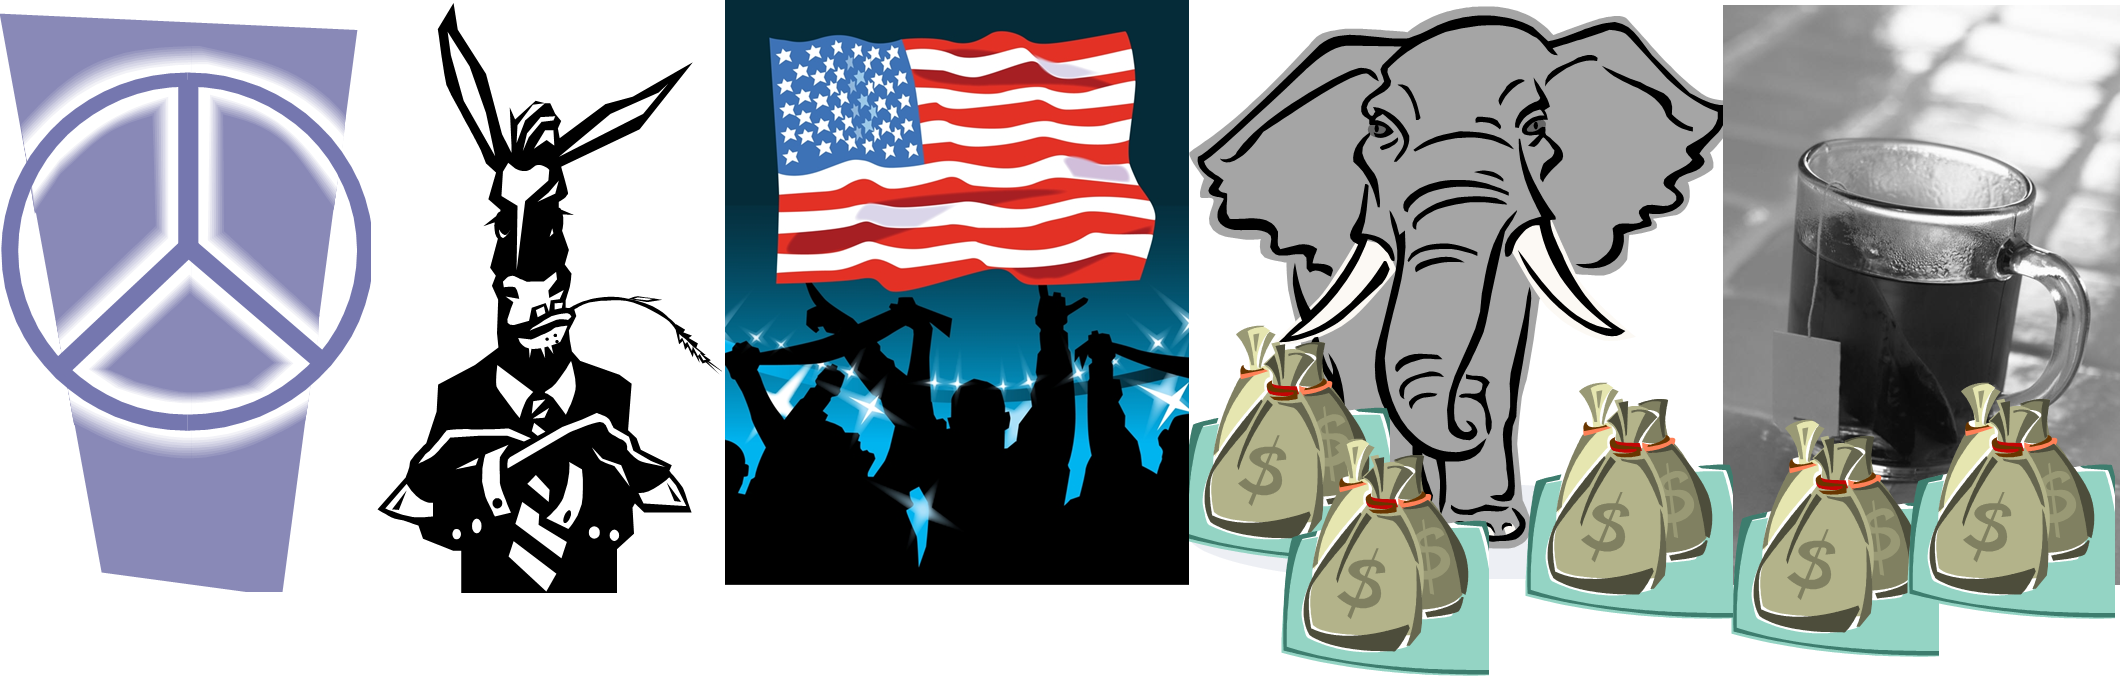 Government clipart military spending. Tag archives congress quick